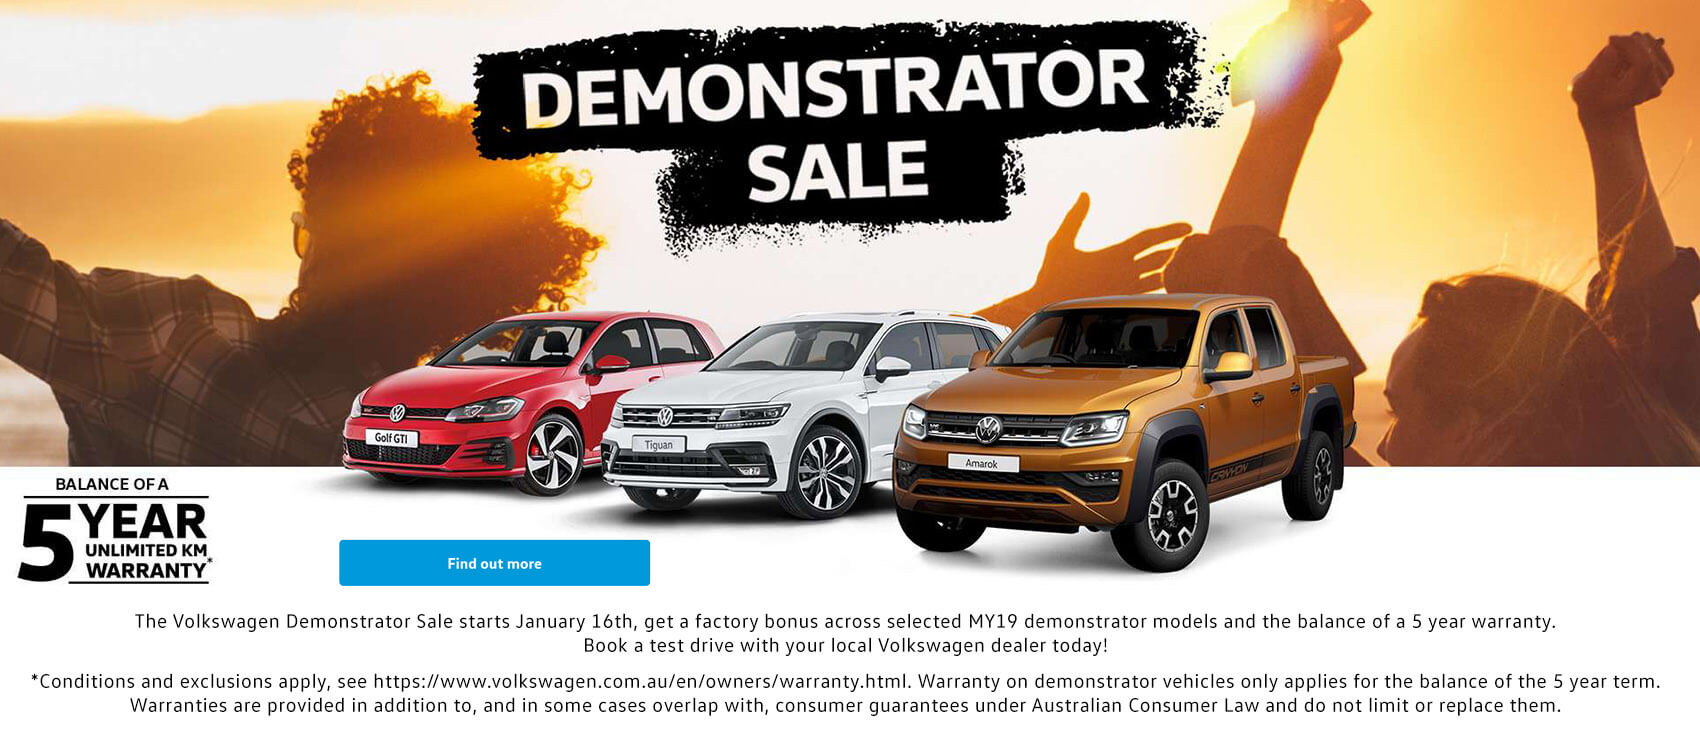 The Volkswagen Demonstrator Sale starts January 16th, get a factory bonus across selected MY19 demonstrator models and the balance of a 5 year warranty. Book a test drive with Gold Coast Volkswagen